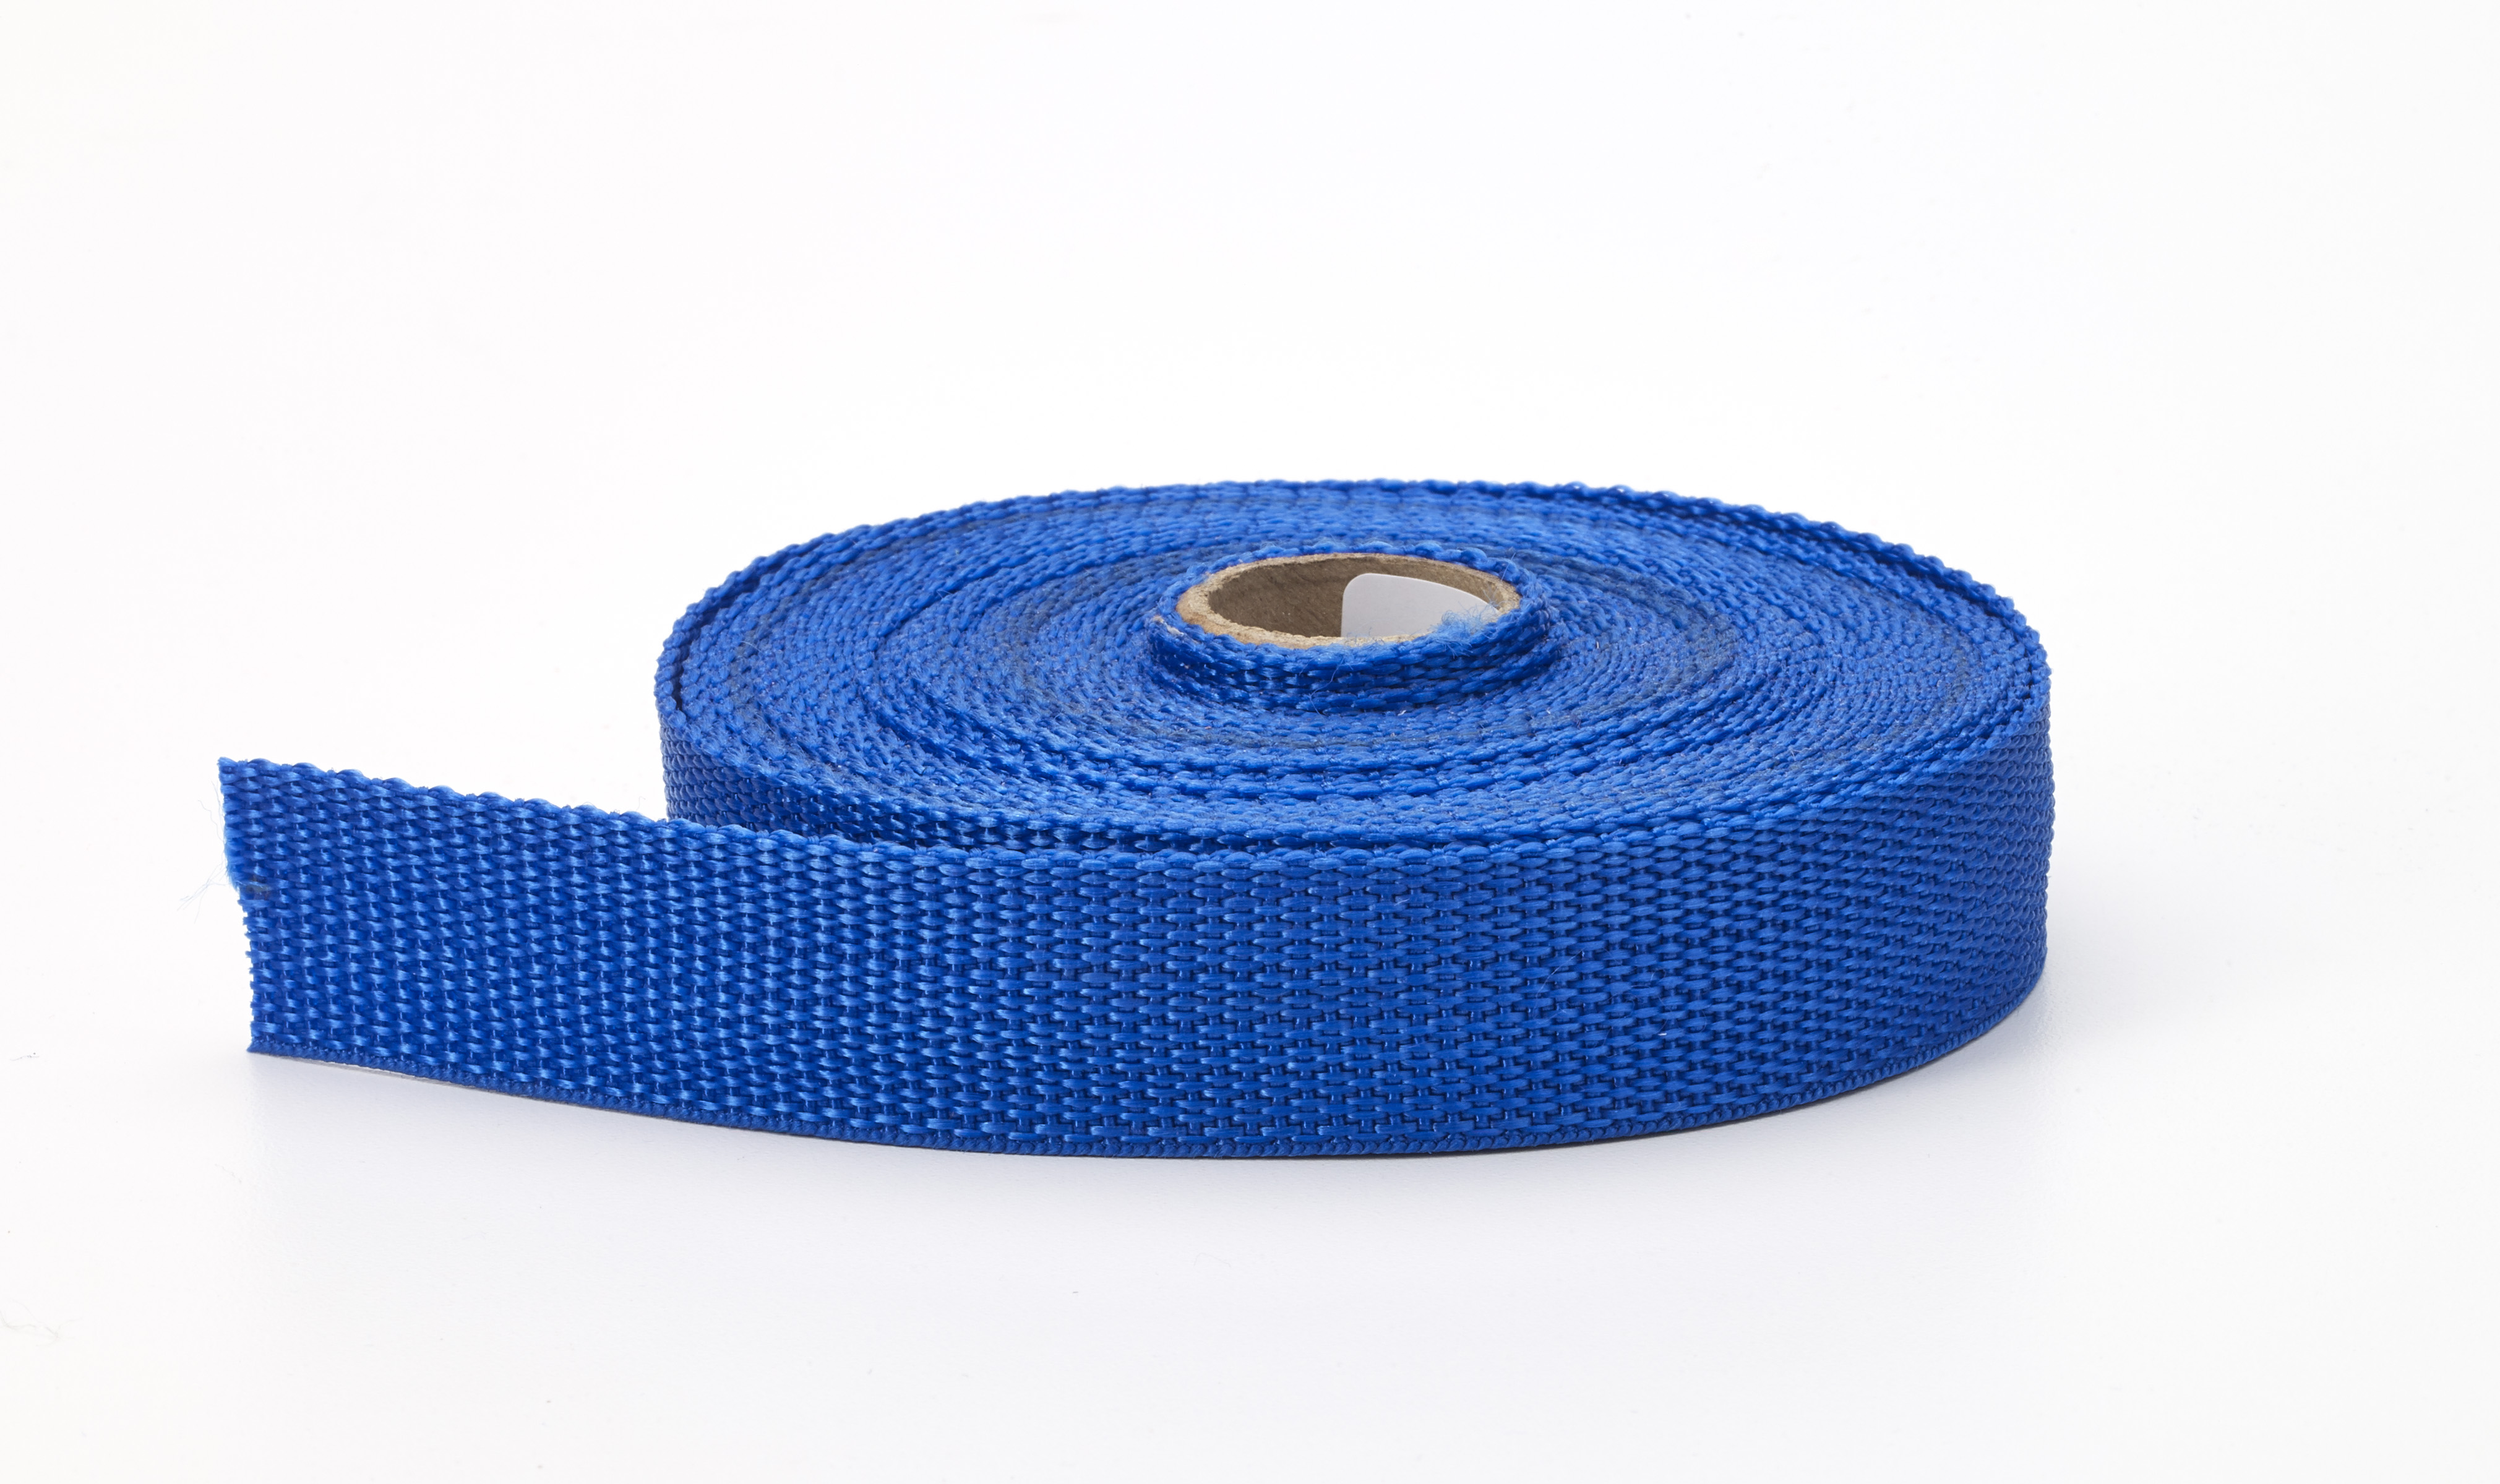 M2020-604-1-10, Polypropylene webbing, 1 in Wide, 10 yds, Pacific blue, Mutual Industries